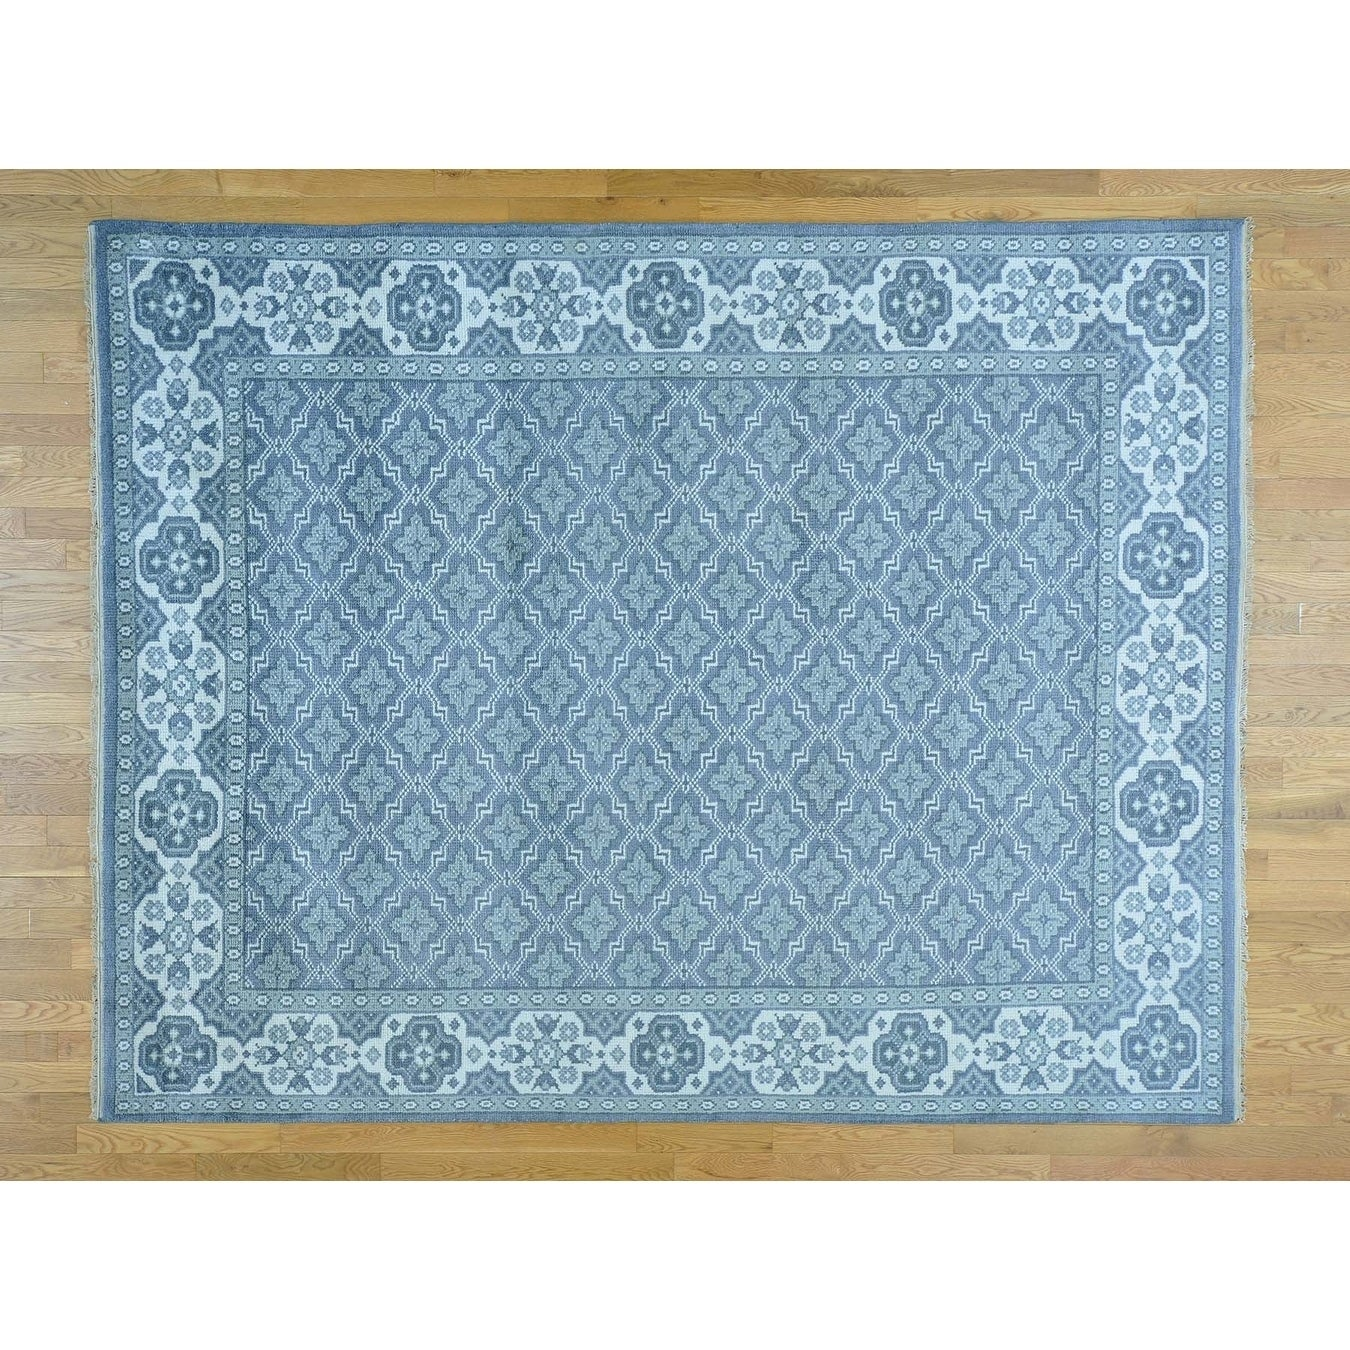 Hand Knotted Blue Oushak And Peshawar with Wool Oriental Rug - 8 x 10